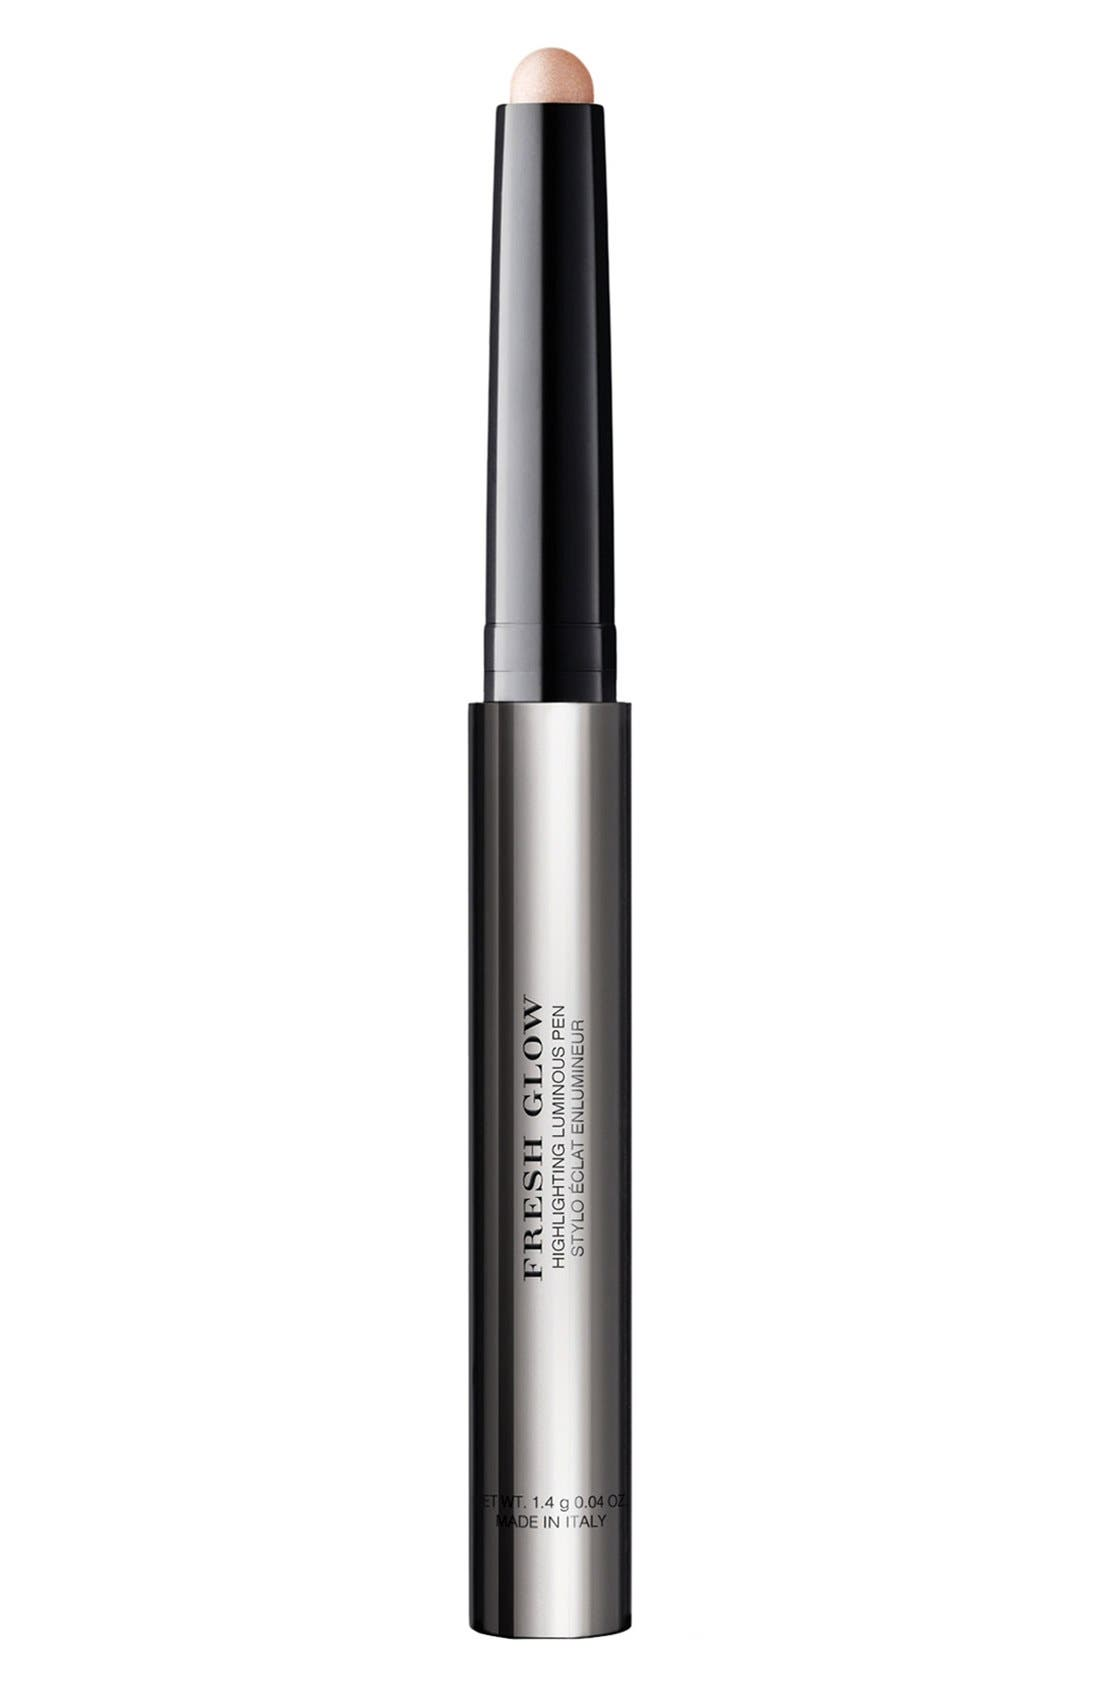 Burberry Beauty 'Fresh Glow' Highlighting Luminous Pen